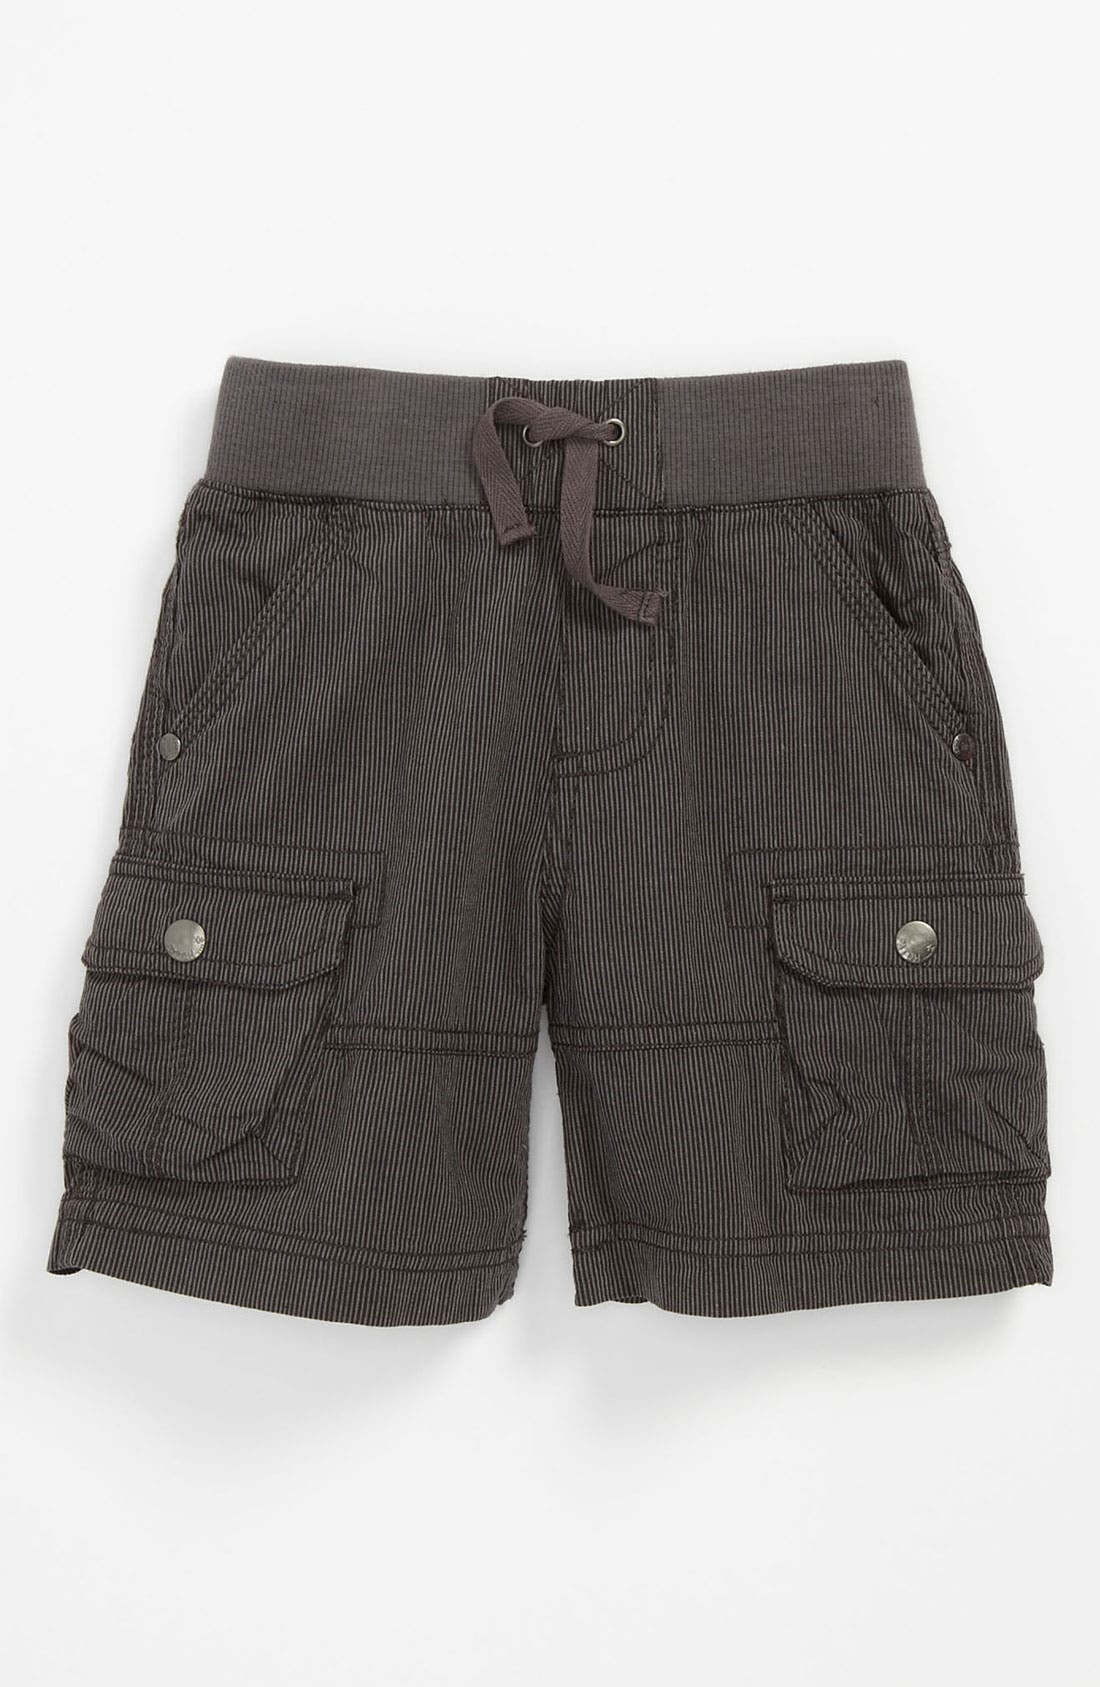 Alternate Image 1 Selected - Pumpkin Patch Pinstripe Cargo Shorts (Baby)